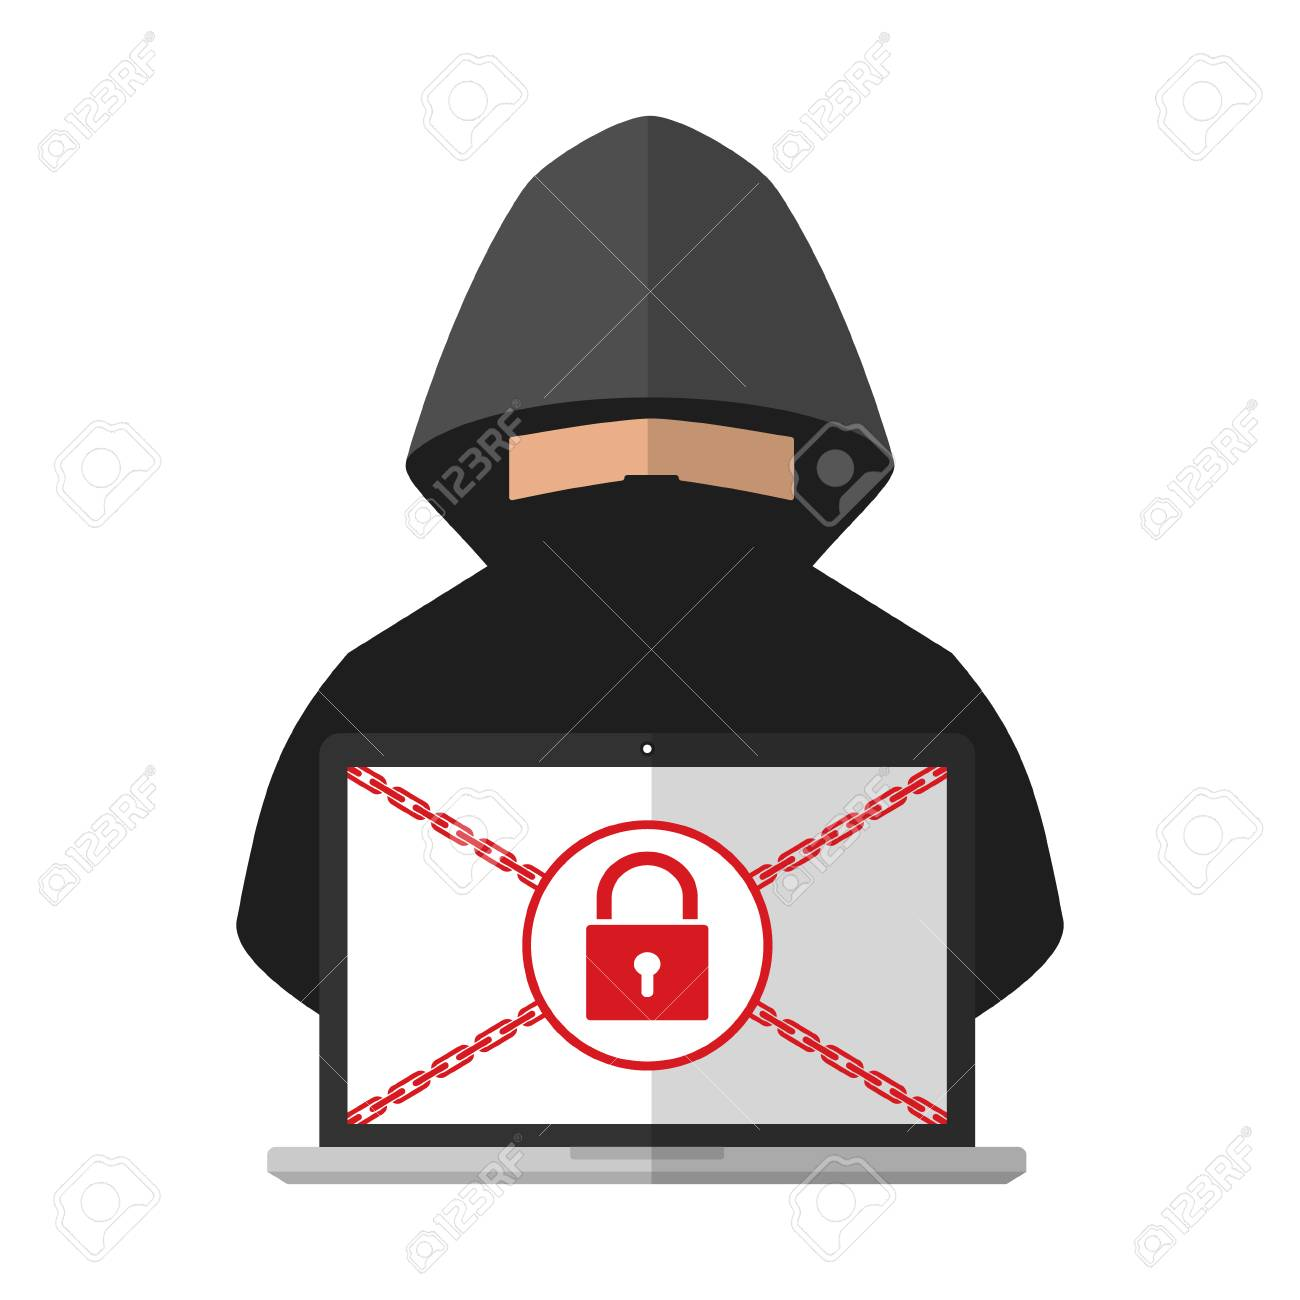 Thief hacker locked a victim computer laptop folder for ransom with ransomware malware virus computer on white background. Vector illustration cybercrime technology data privacy and security concept. - 92170976